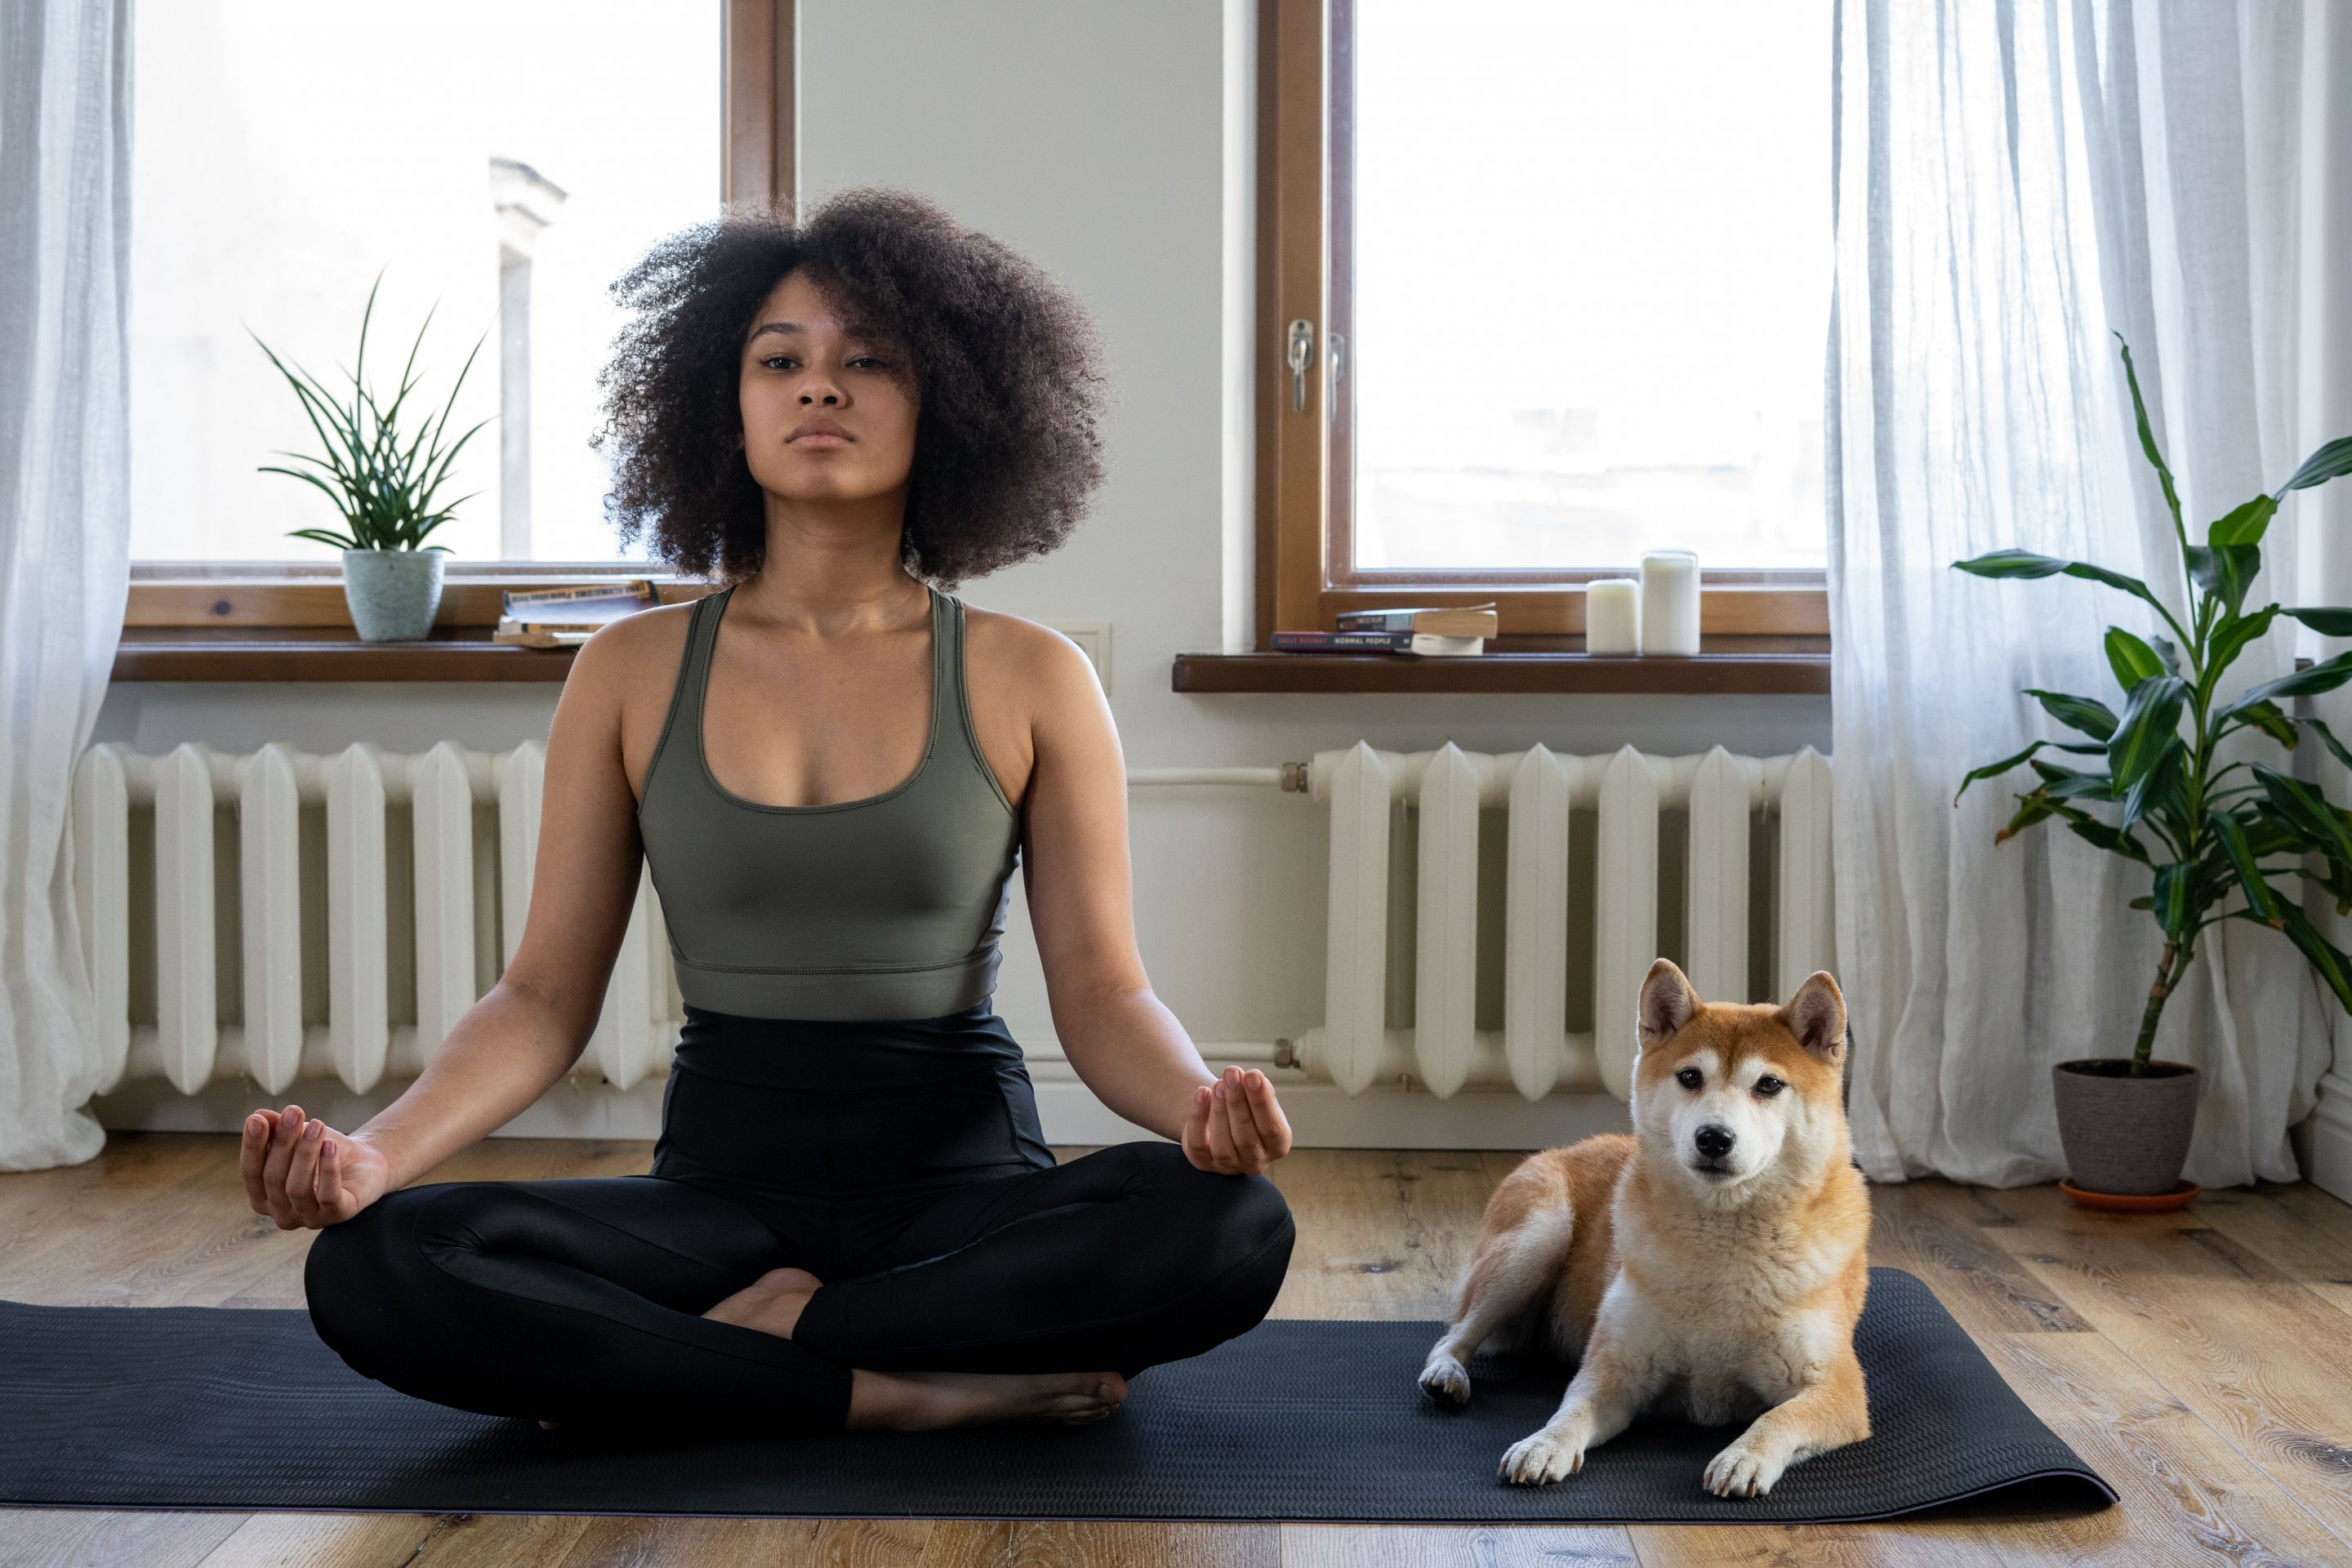 The direct correlation between yoga and mindfulness